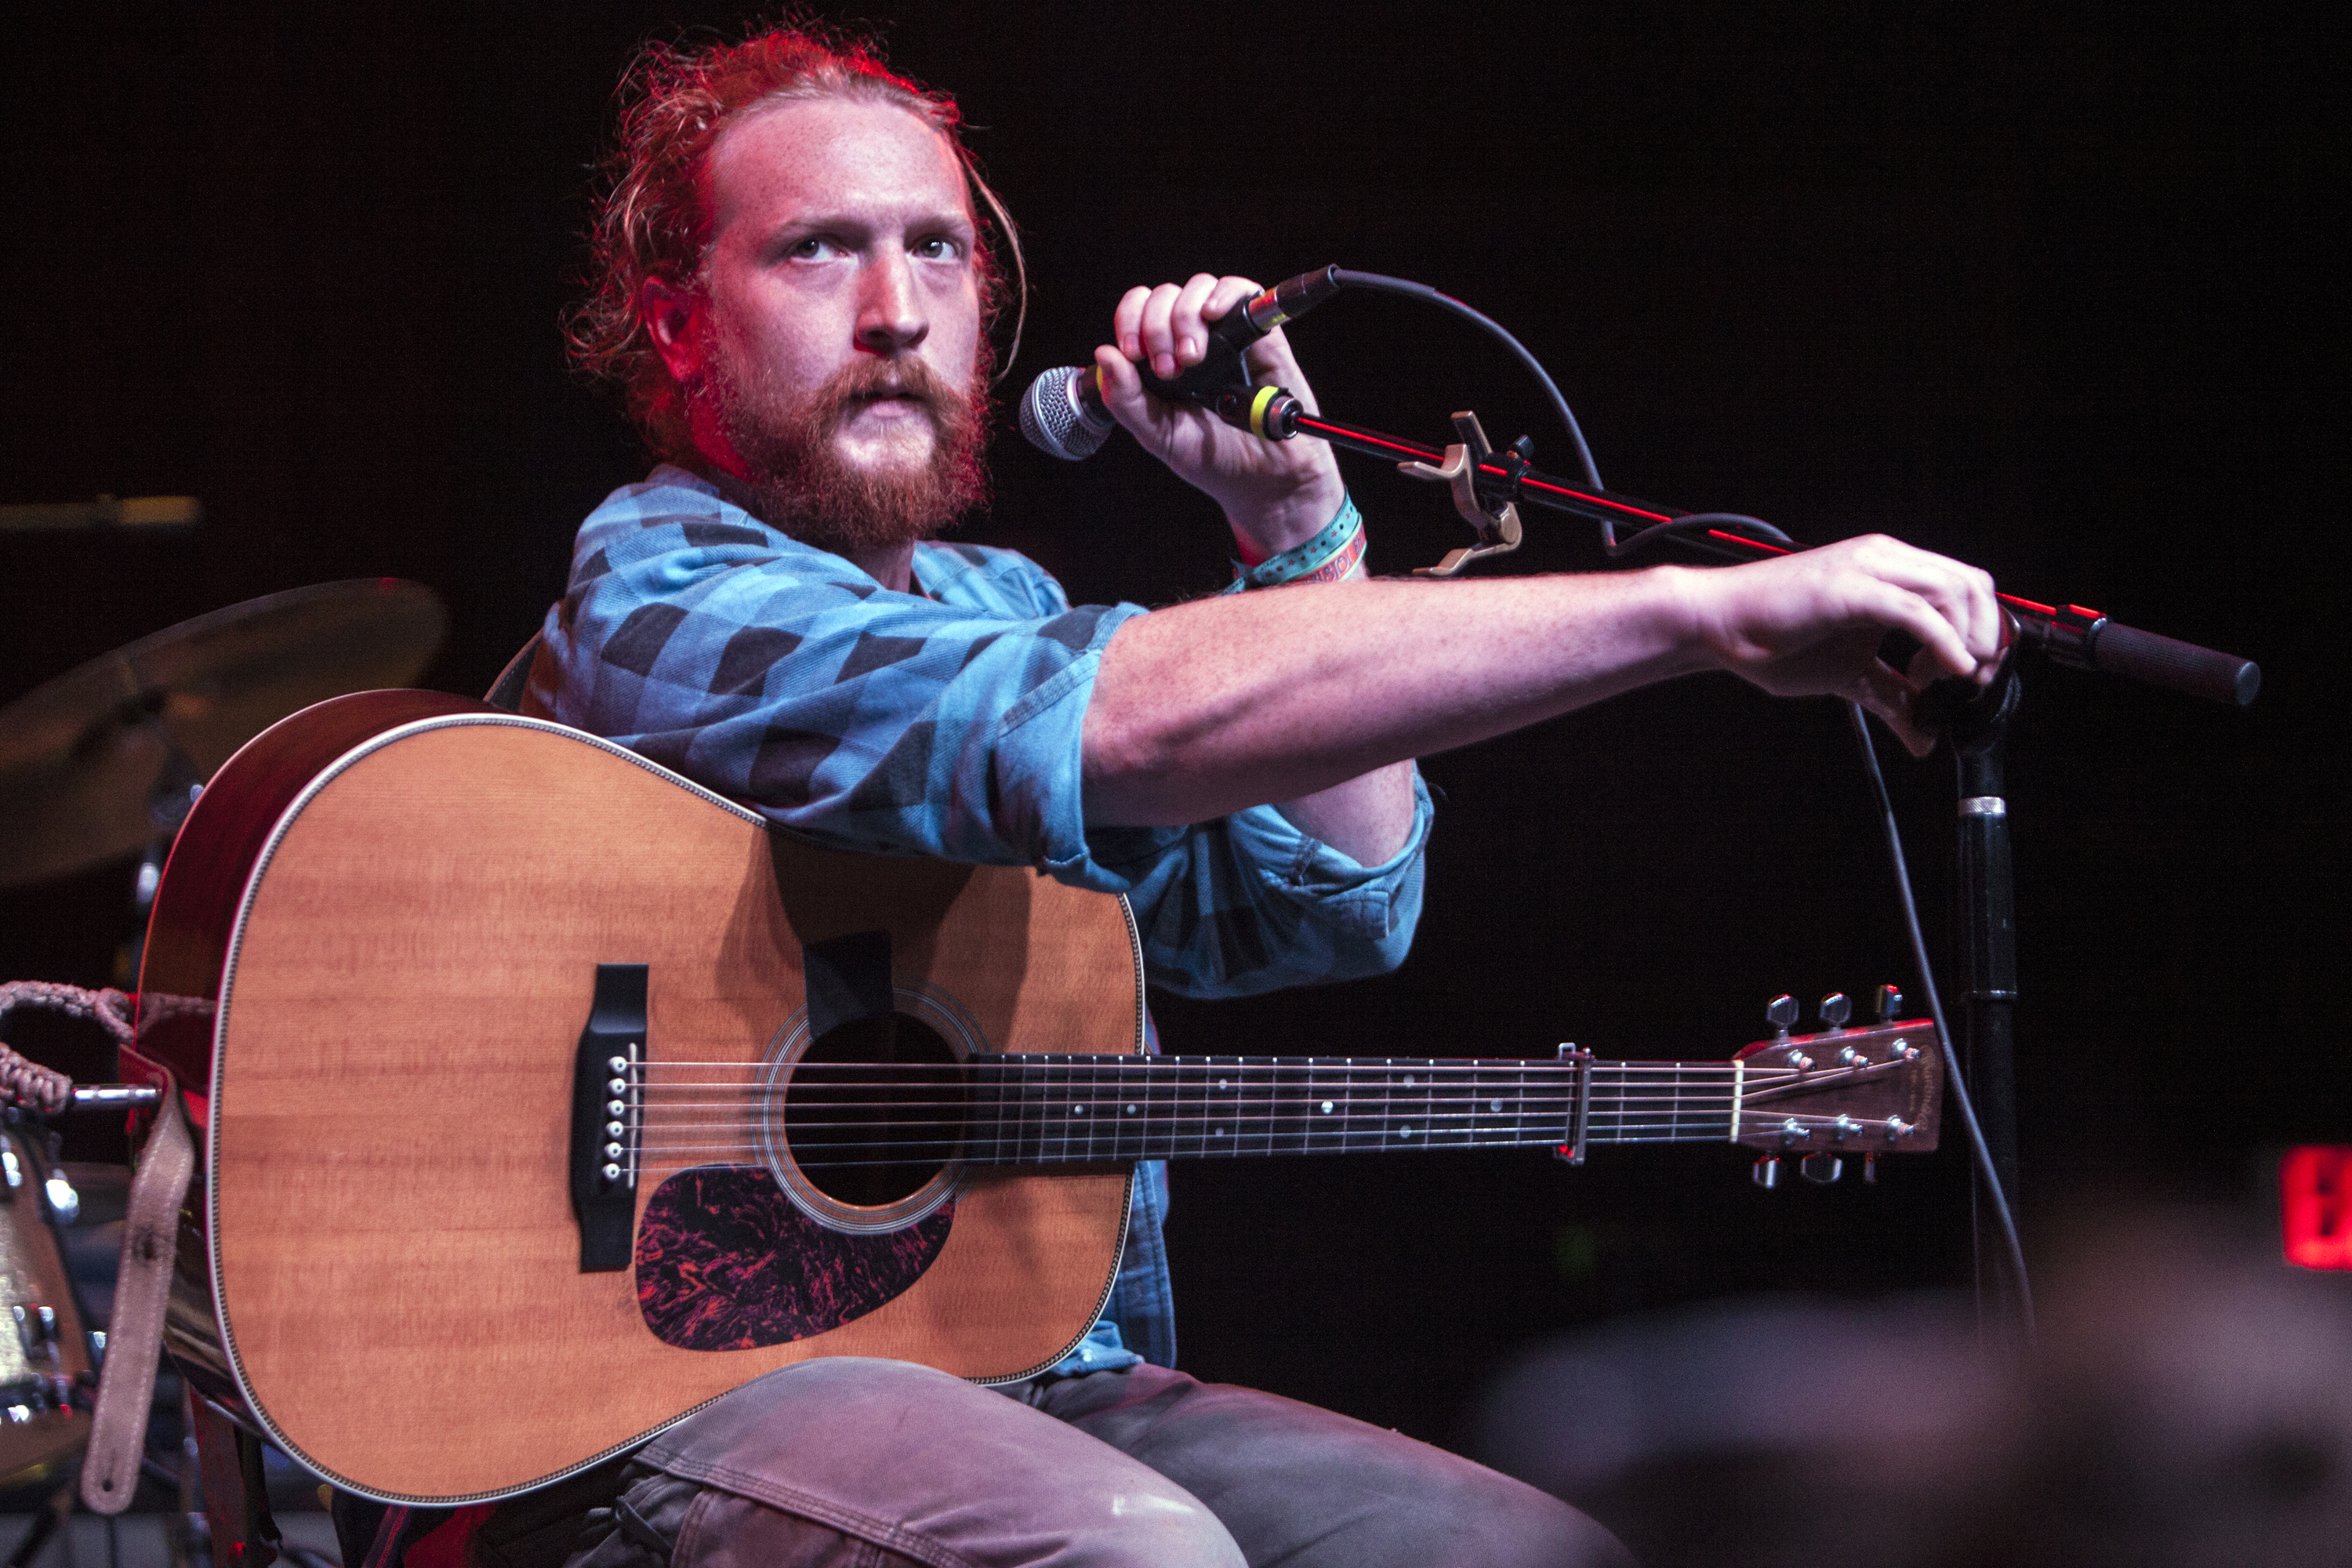 ffb53ba17e78 Singer-songwriter Tyler Childers has extended his 2018 tour with new summer  dates.